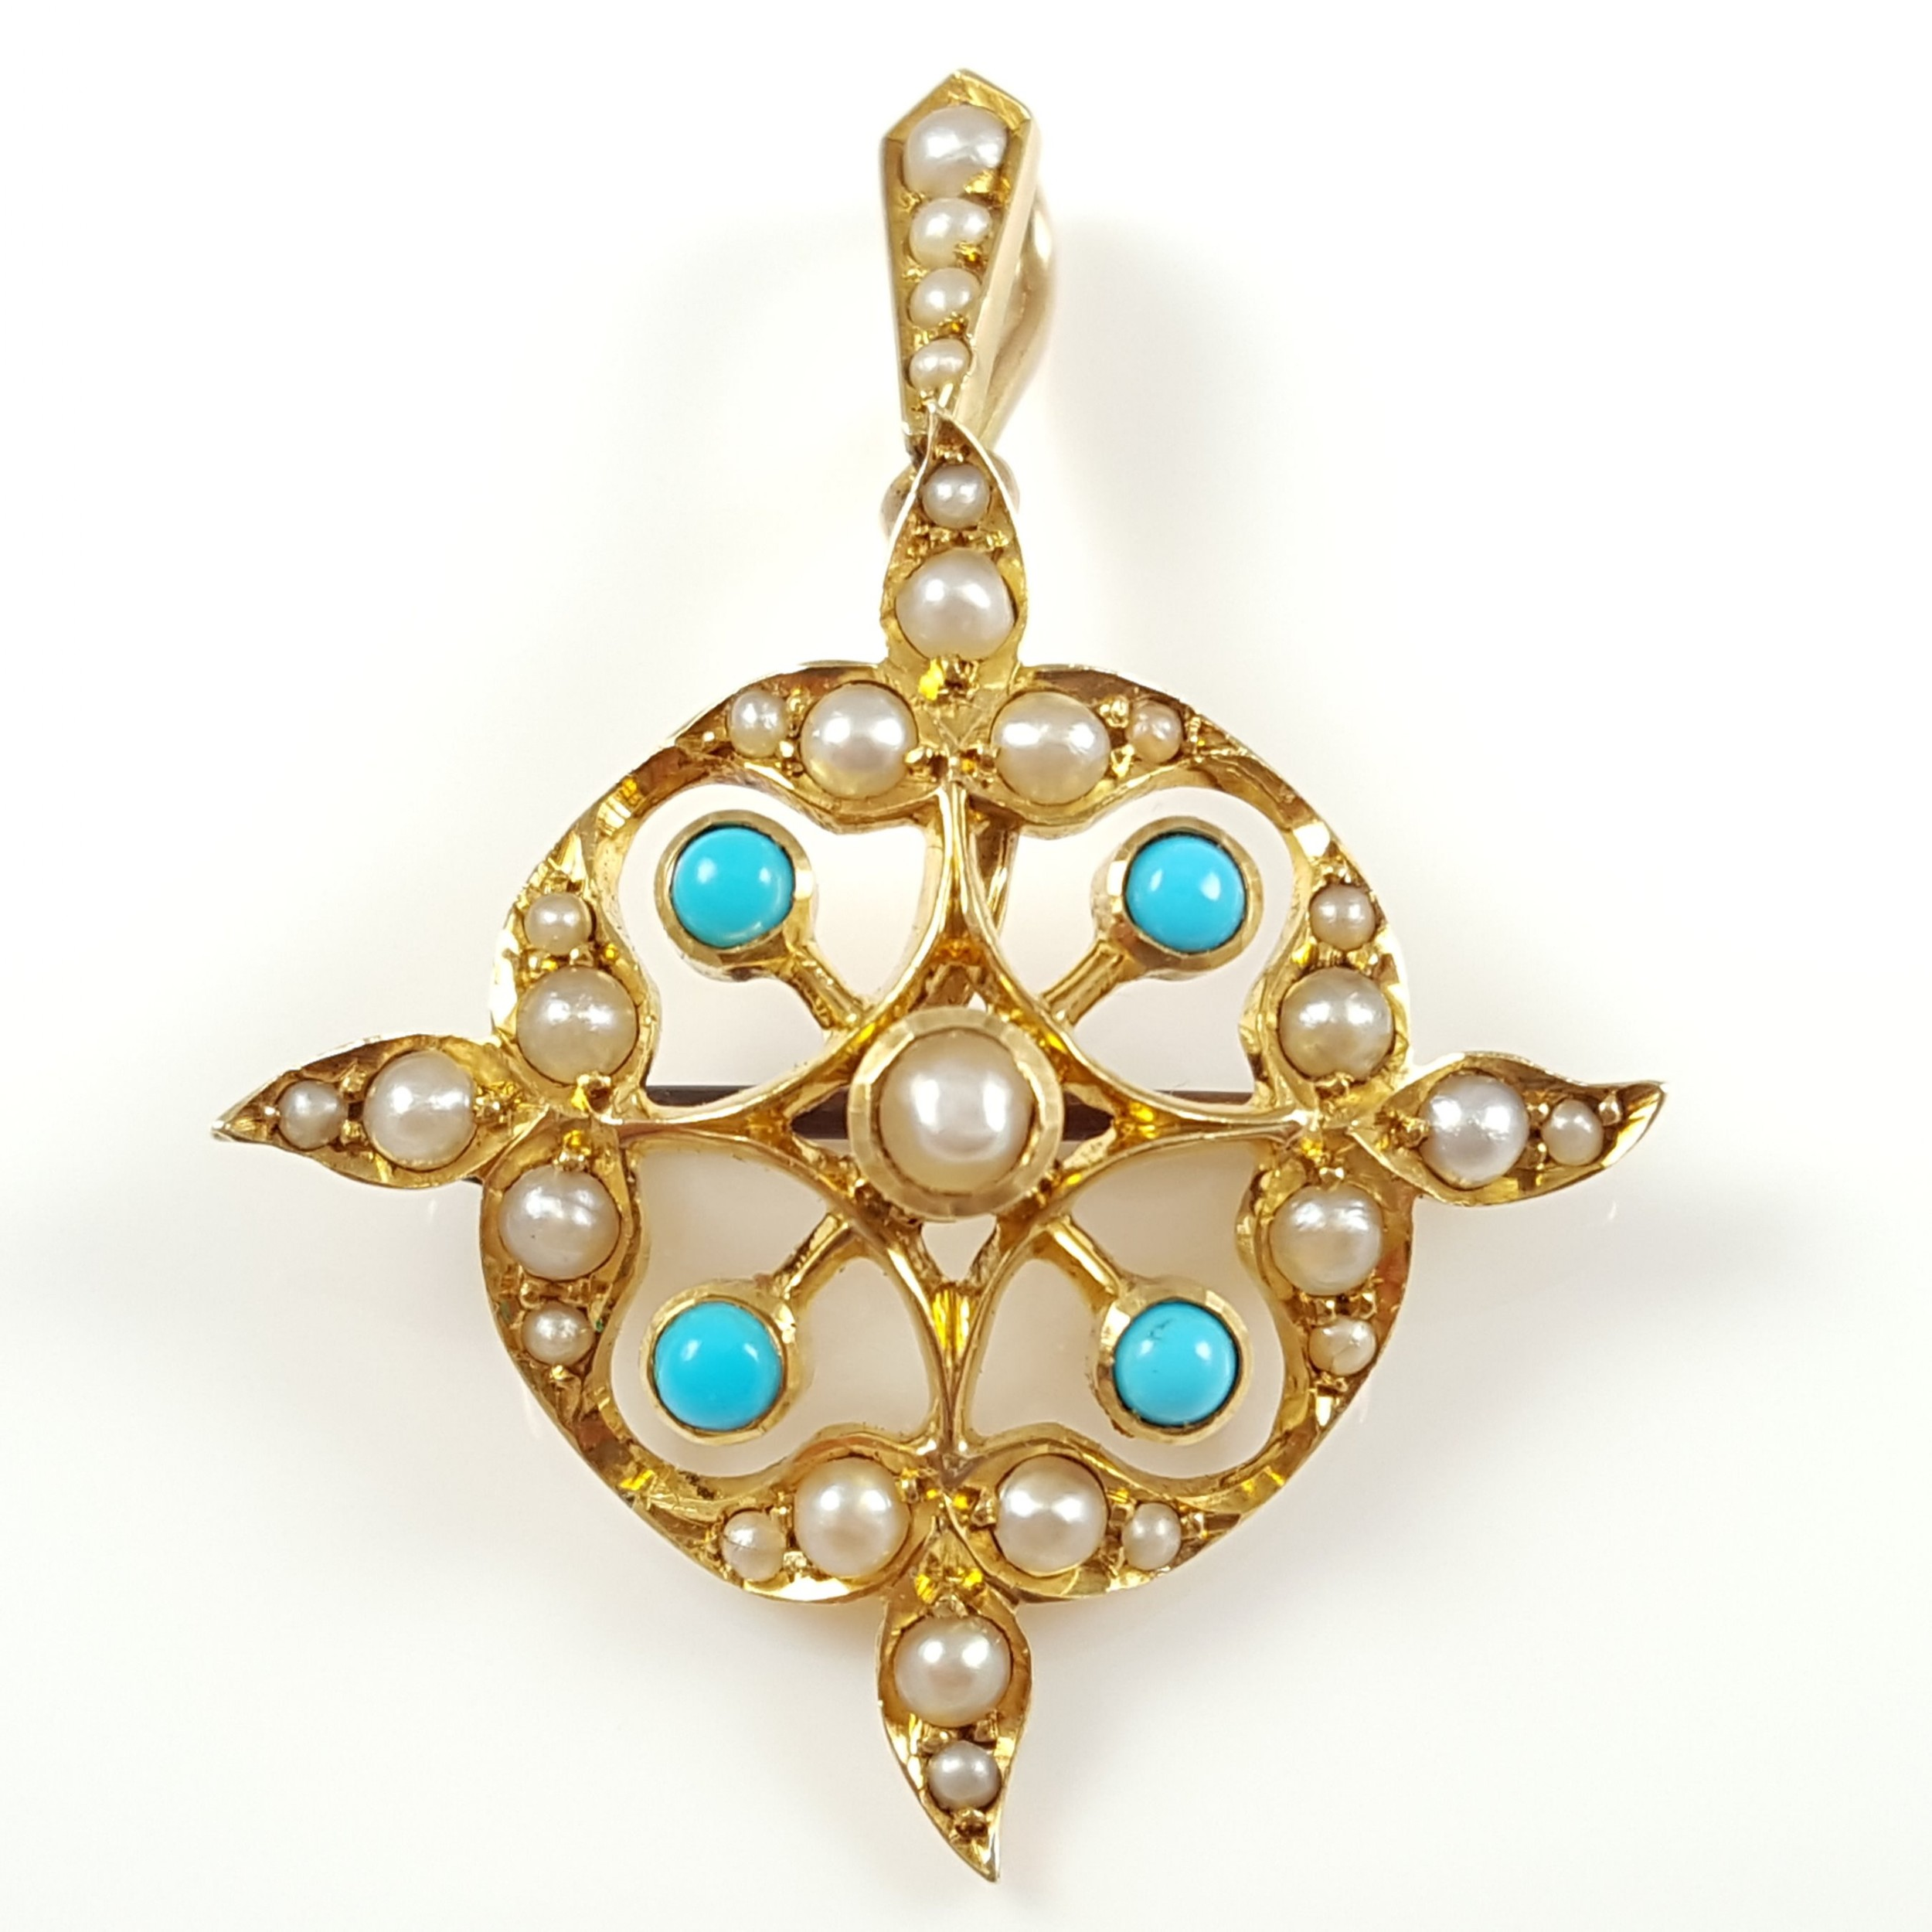 edwardian 15ct gold turquoise cabochon seed pearl pendant brooch